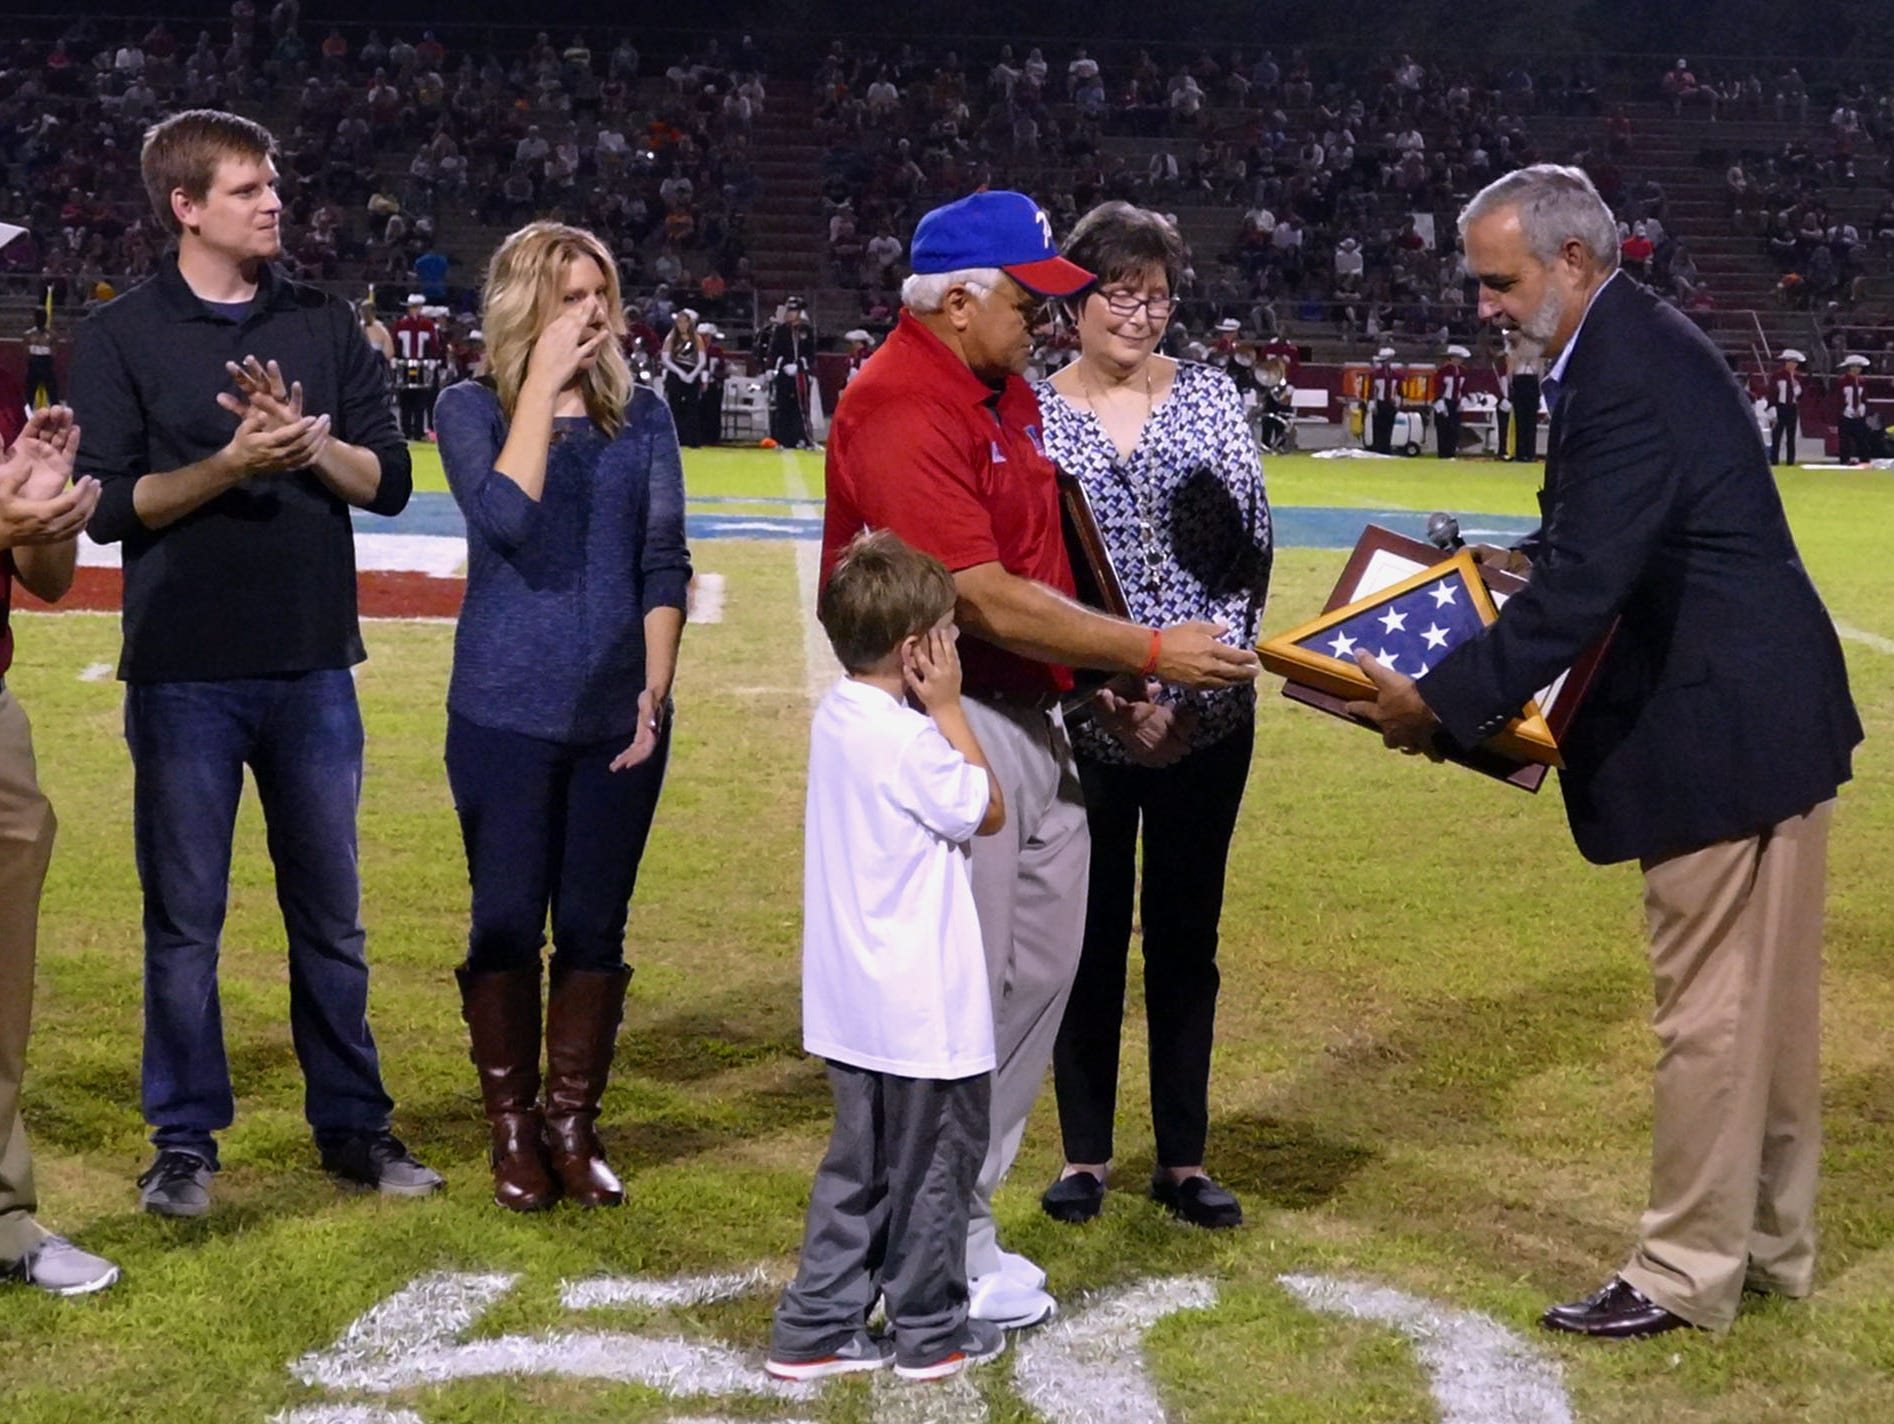 Congressman Jeff Miller, far right, was on hand to congratulate Pace Head football coach Mickey Lindsey on his years of service and upcoming retirement. To the left are members of Mickey's family including his son, Jay Lindsey, the head coach of the Tate Aggies, the team Pace was hosting Friday night. The Aggies went on to win the game 48-28.